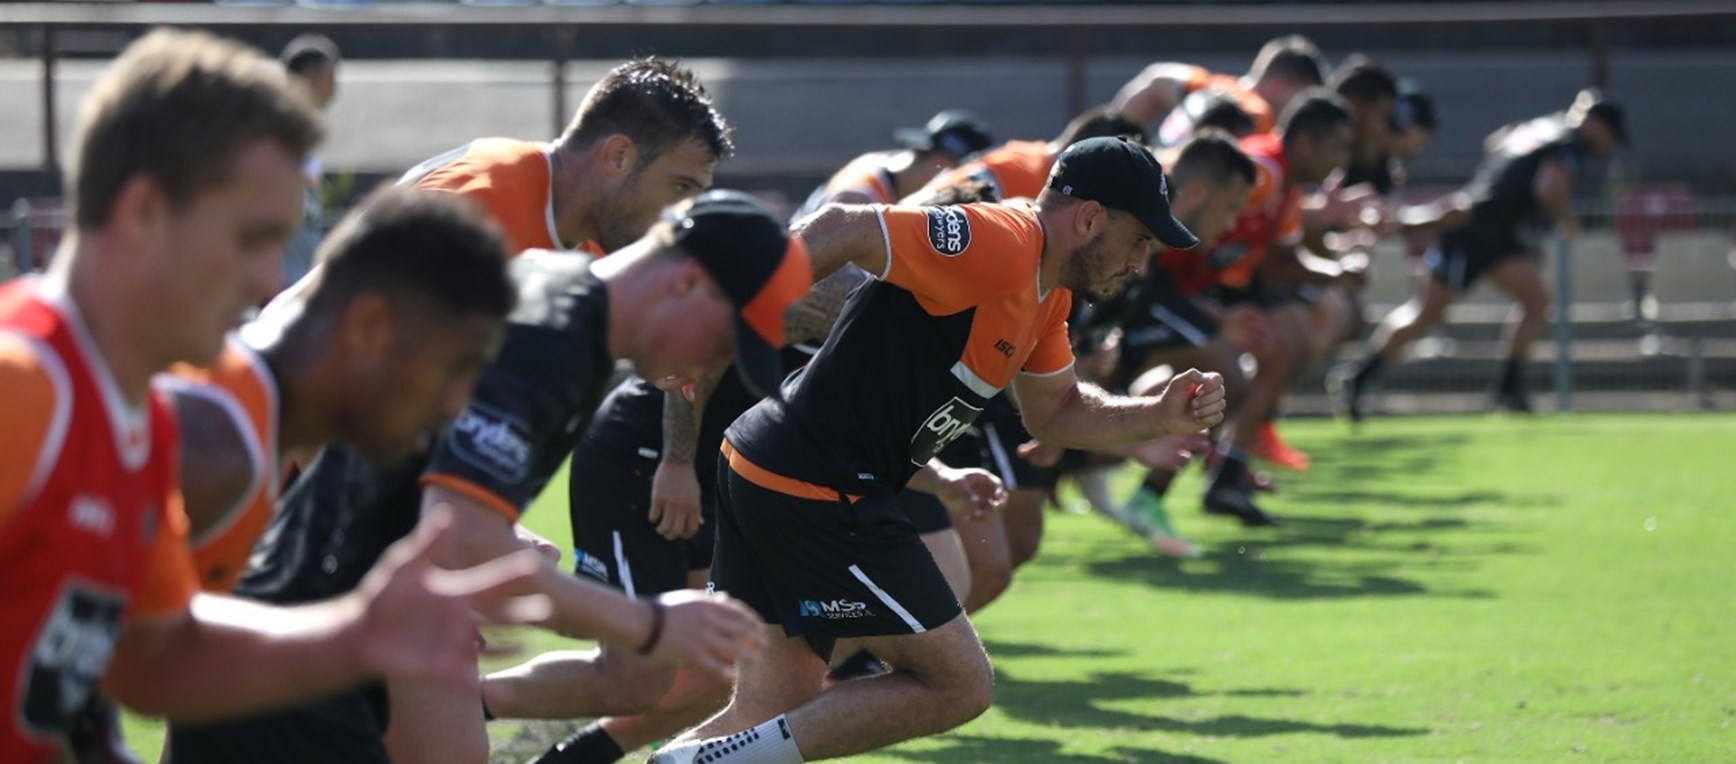 Gallery: Hard at work in pre-season training